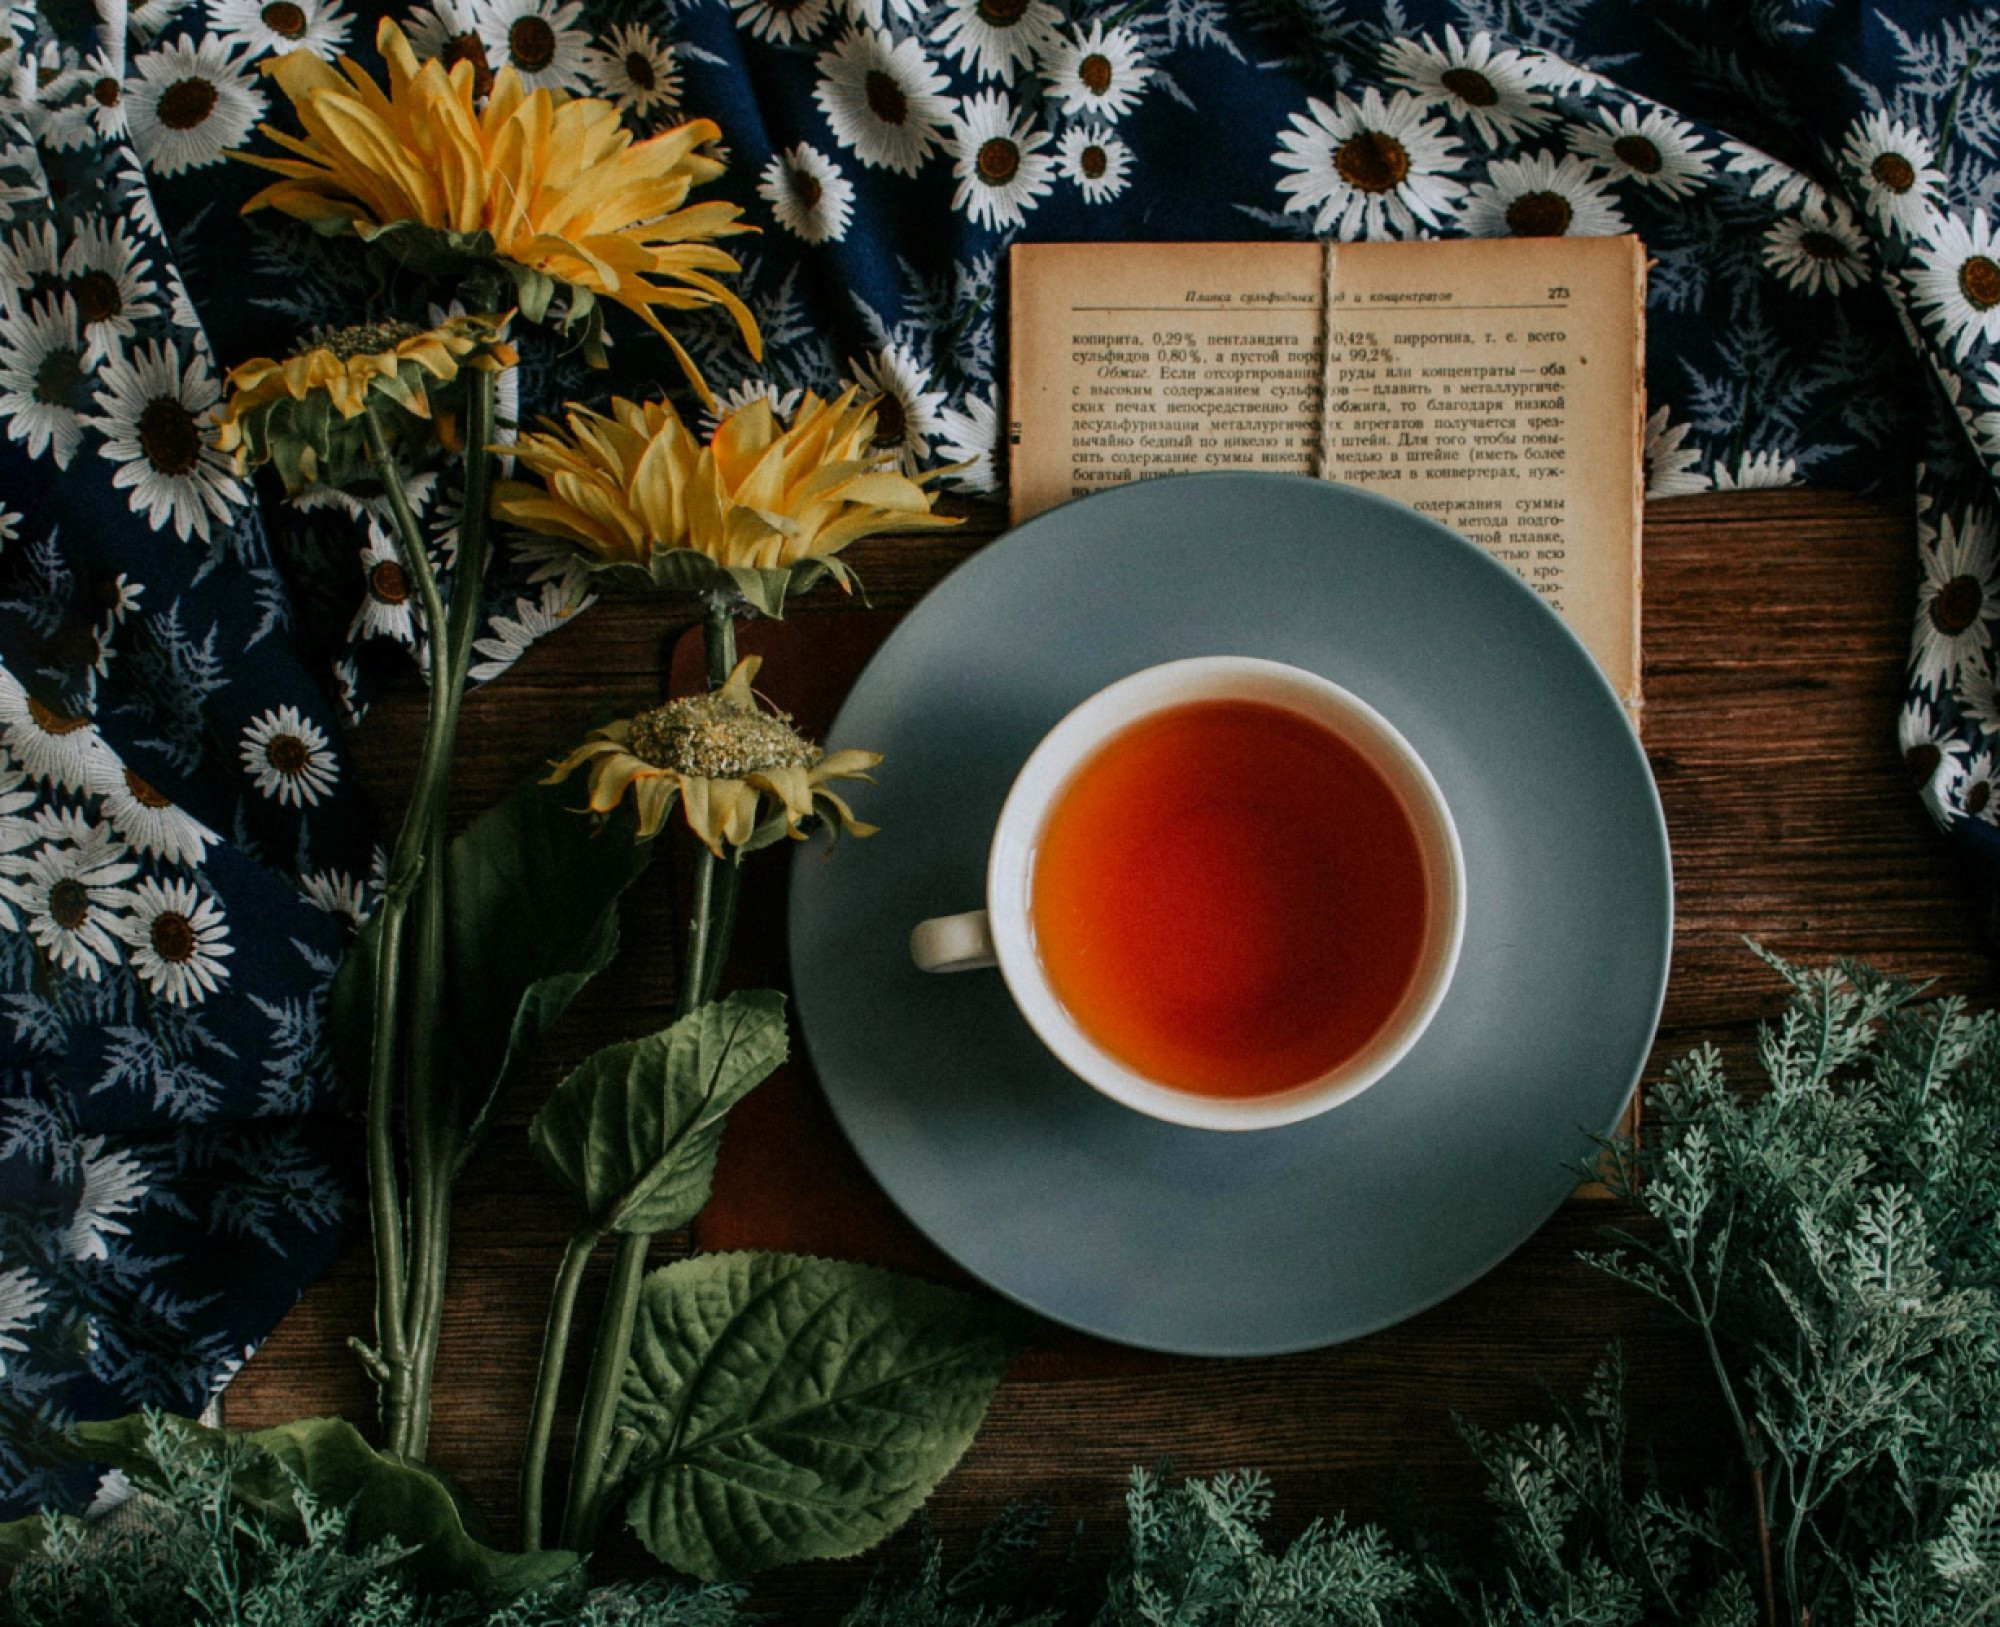 The tea you should drink based on your mood!